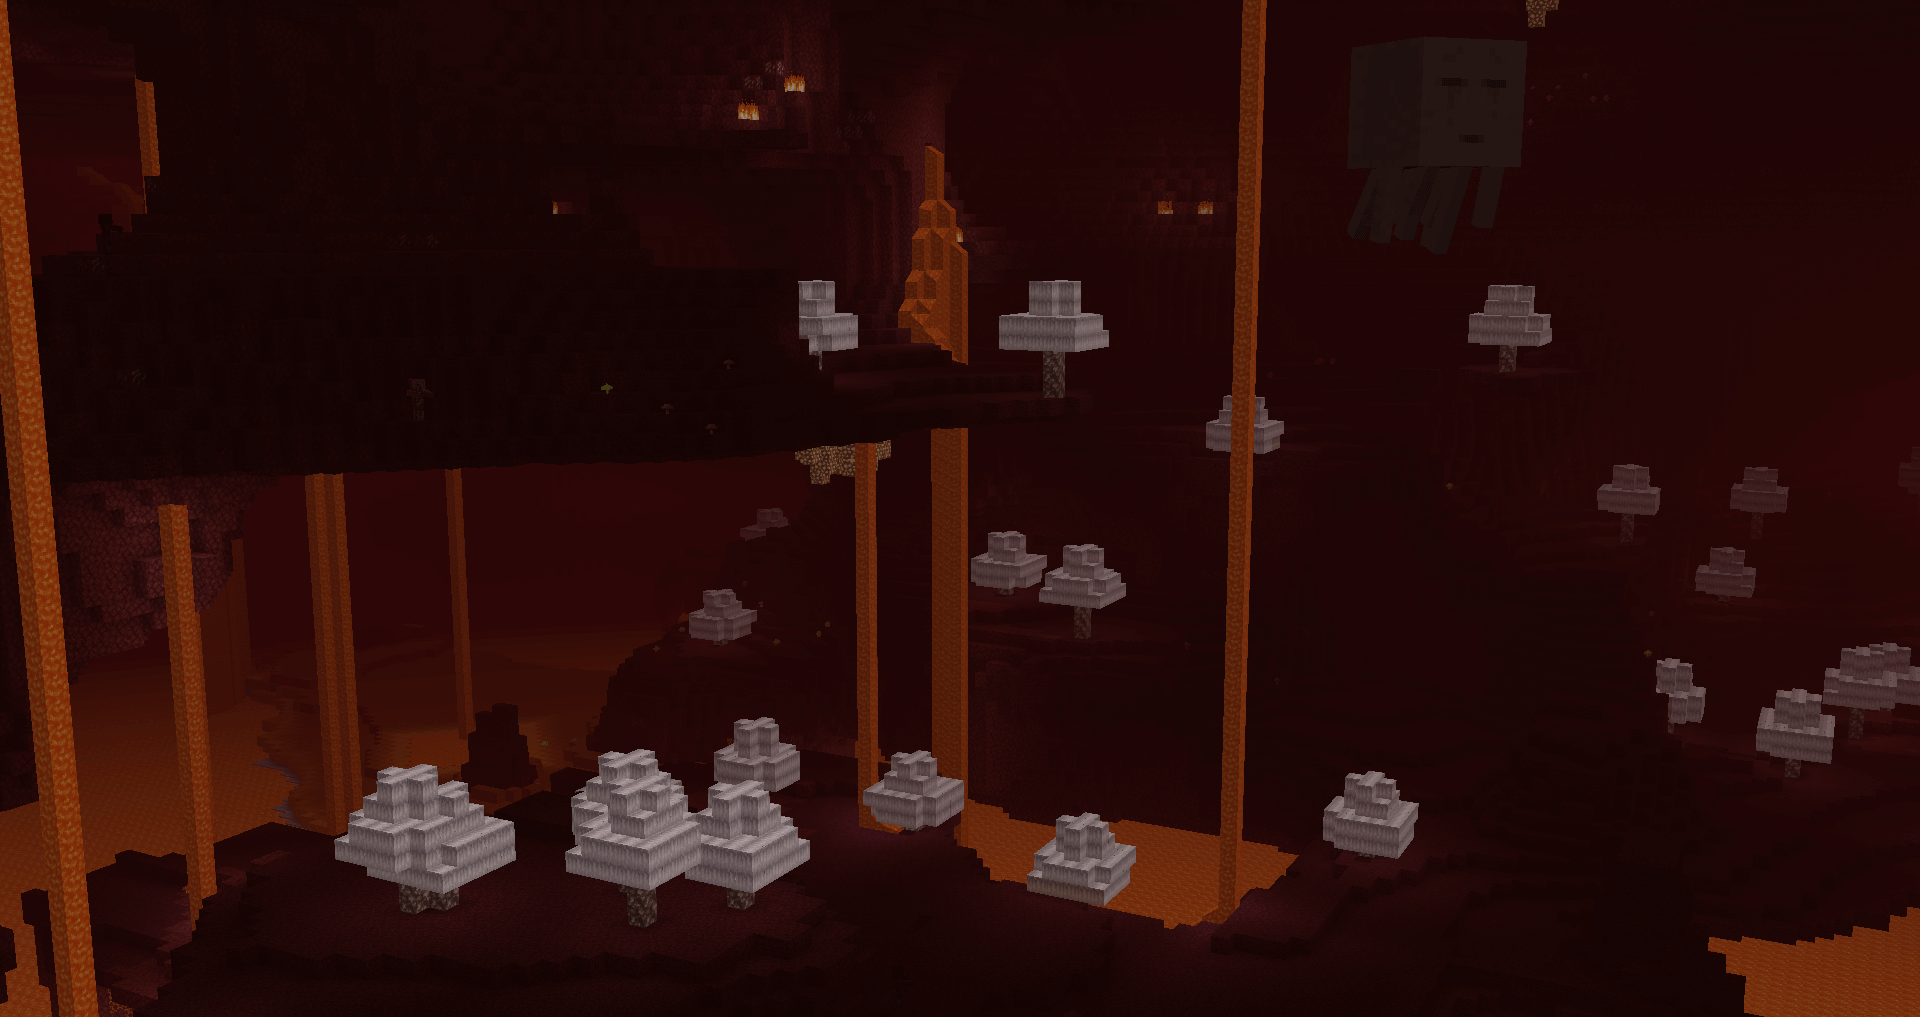 Another shot of the Nether